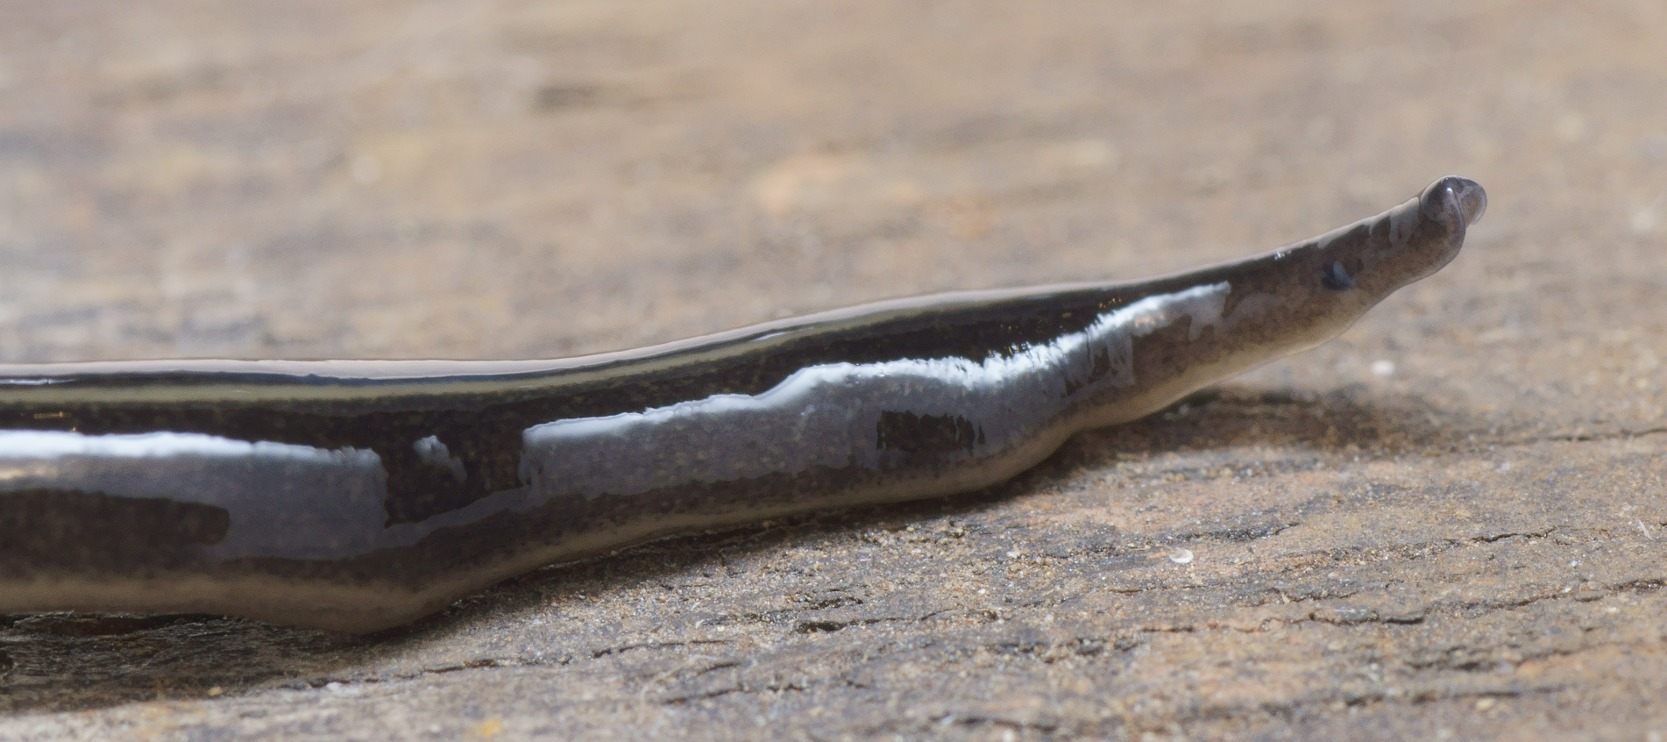 Image of New guinea flatworm